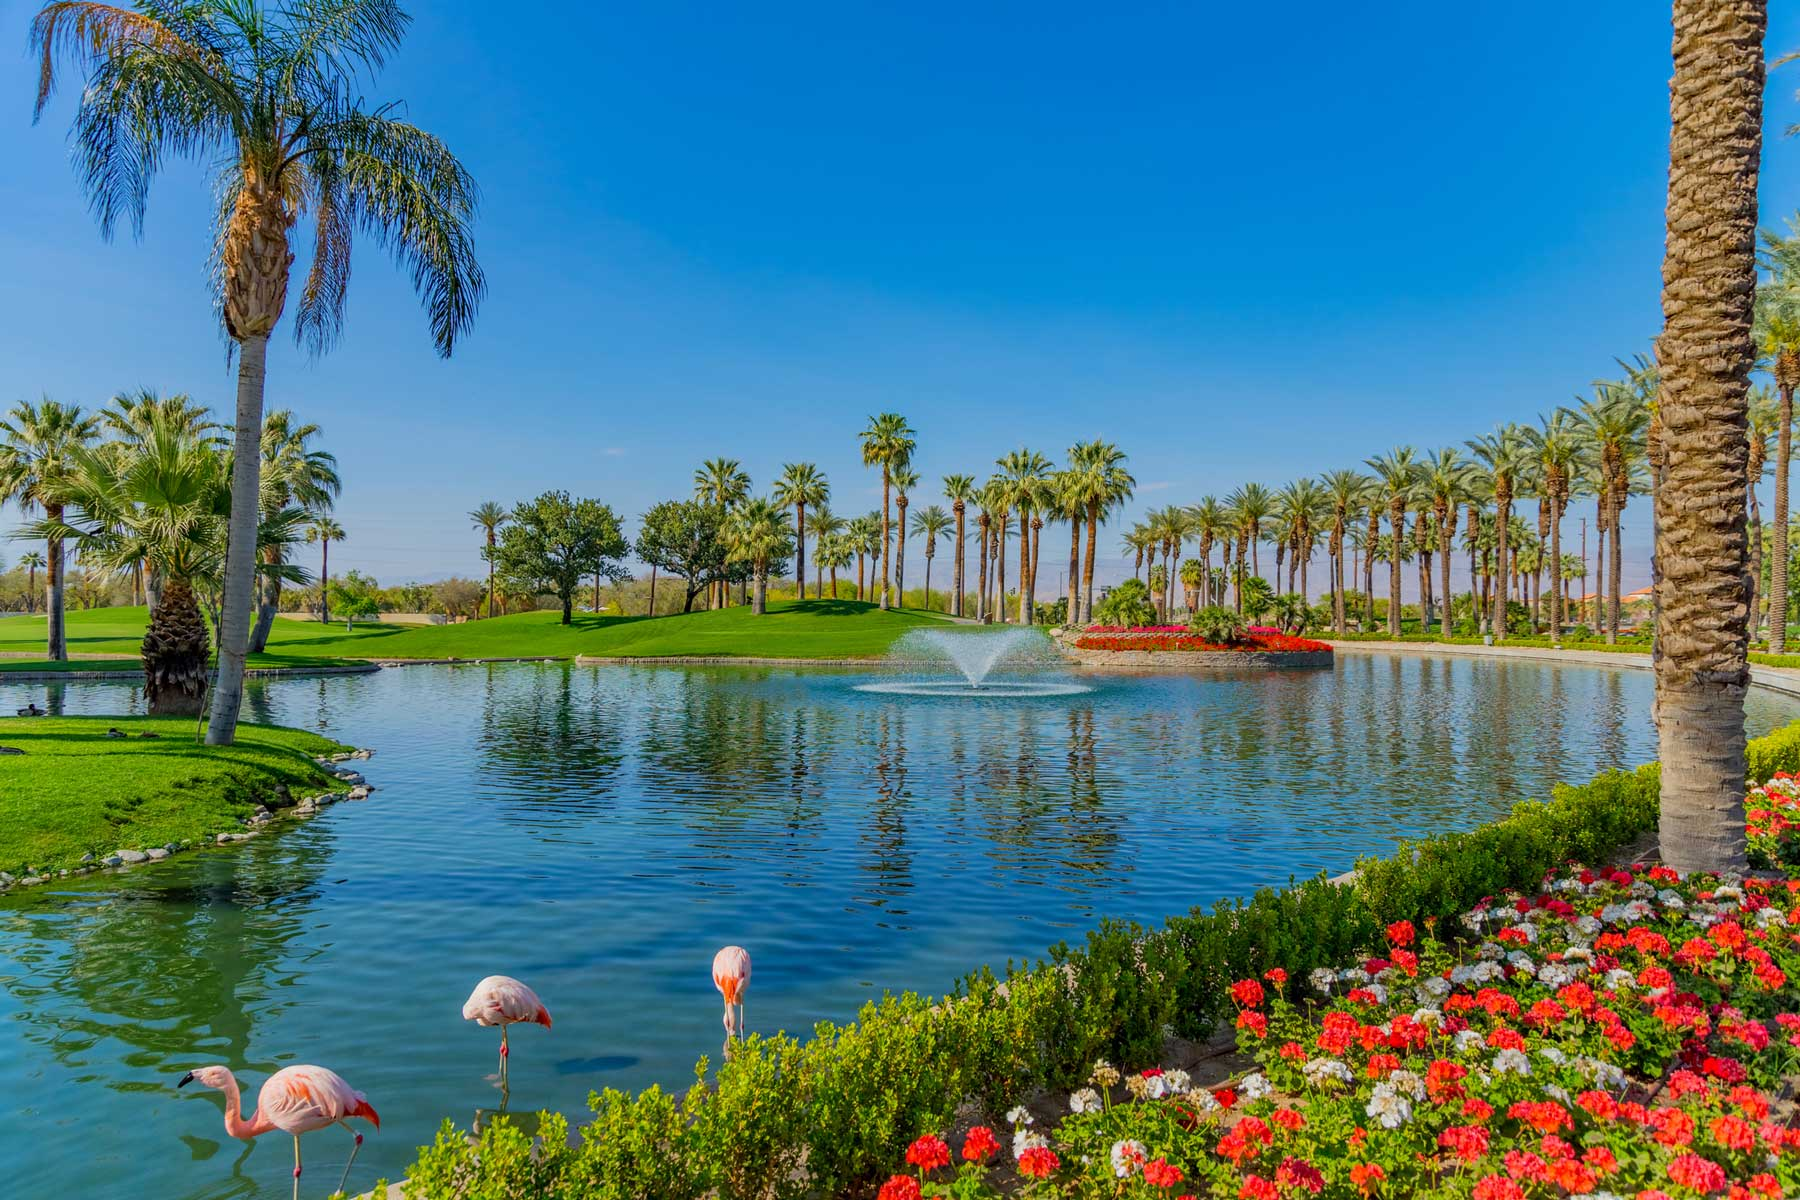 Palm Trees line a green belt and pond in Palm Springs, California